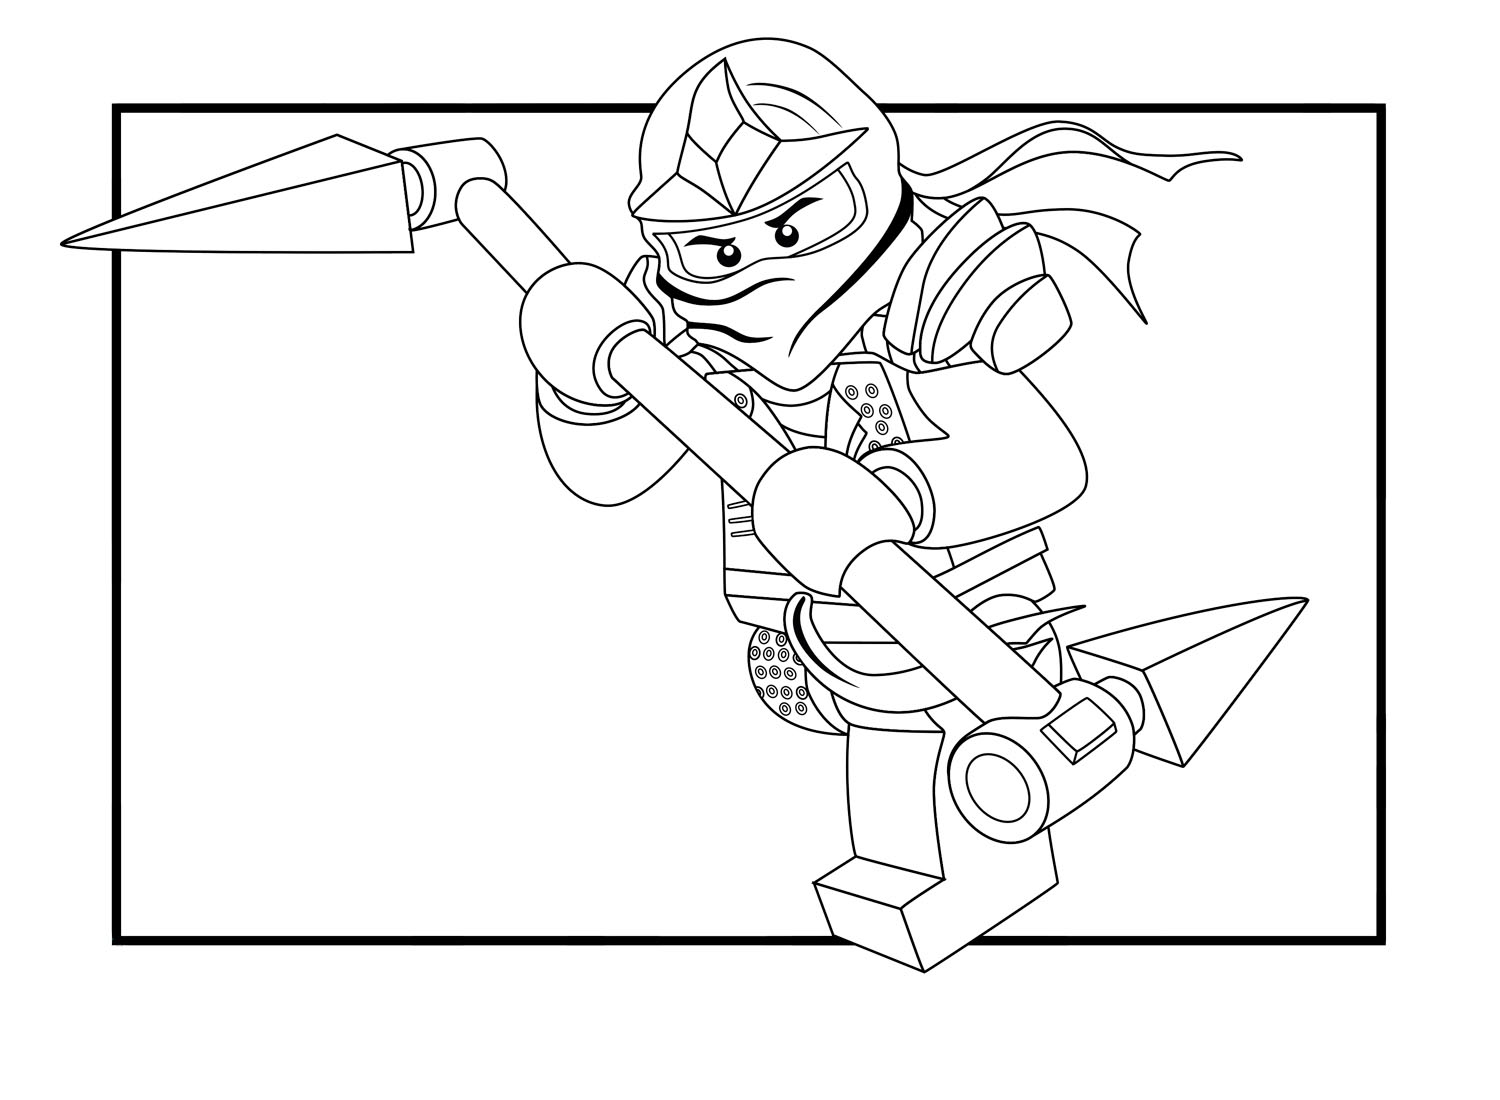 Lego Ninjago coloring pages to